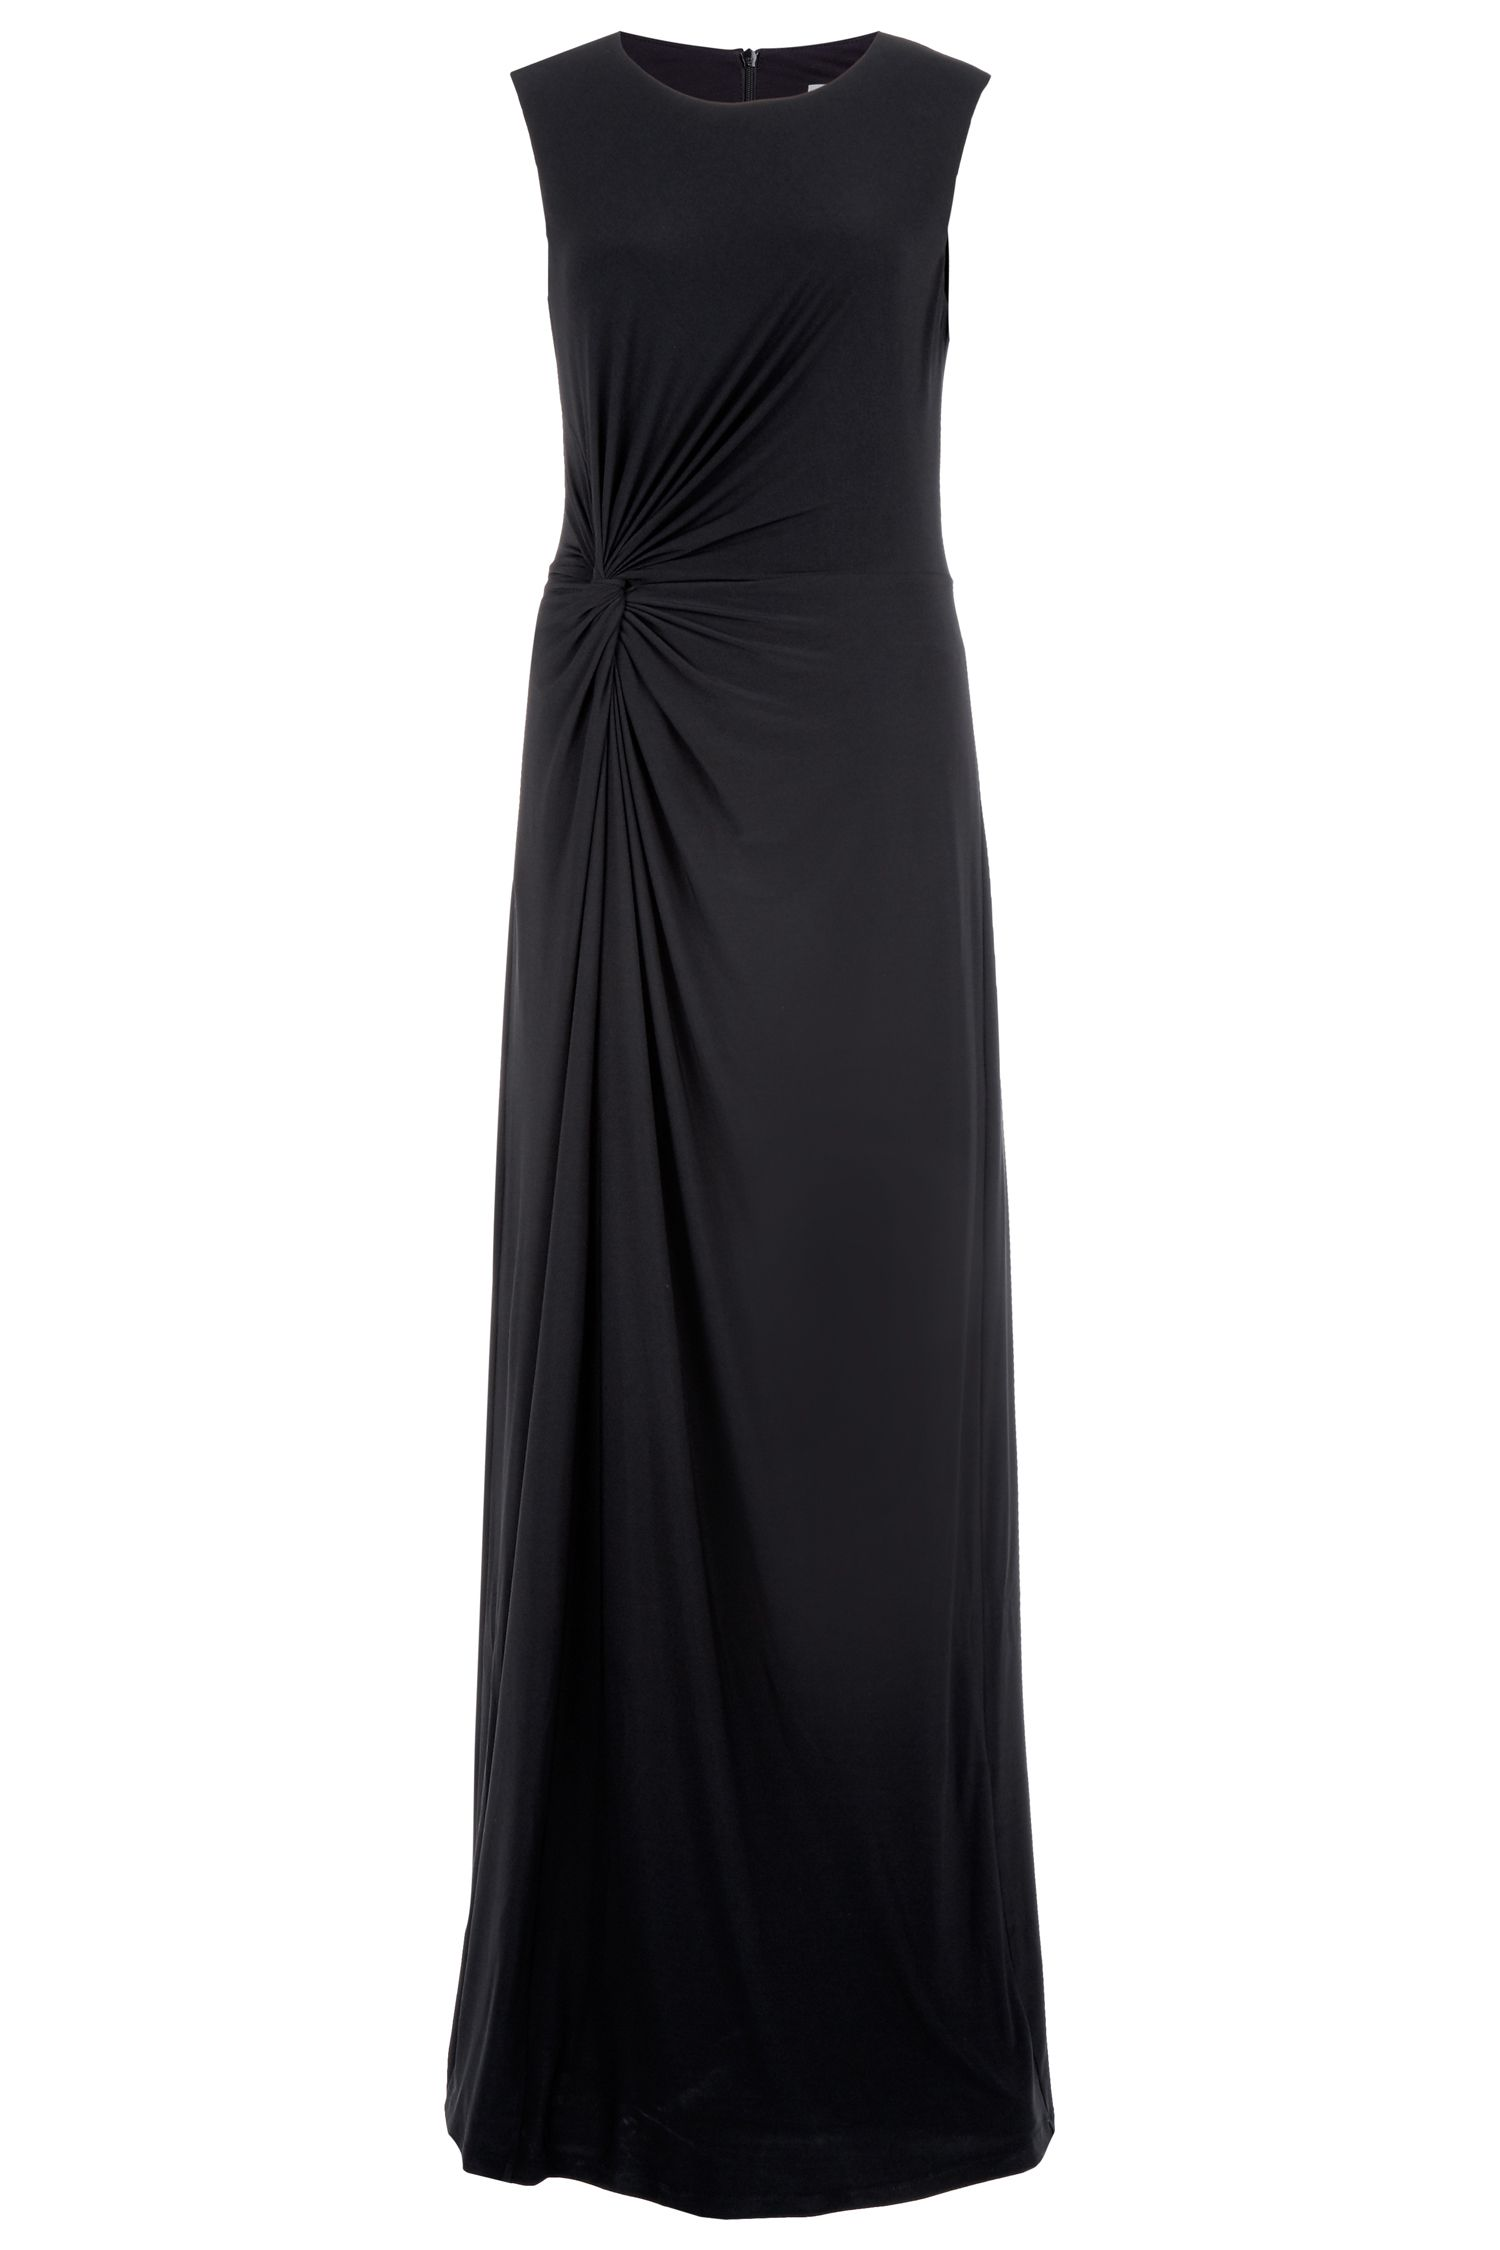 Damsel in a Dress Stilla Maxi Dress, Jet Black